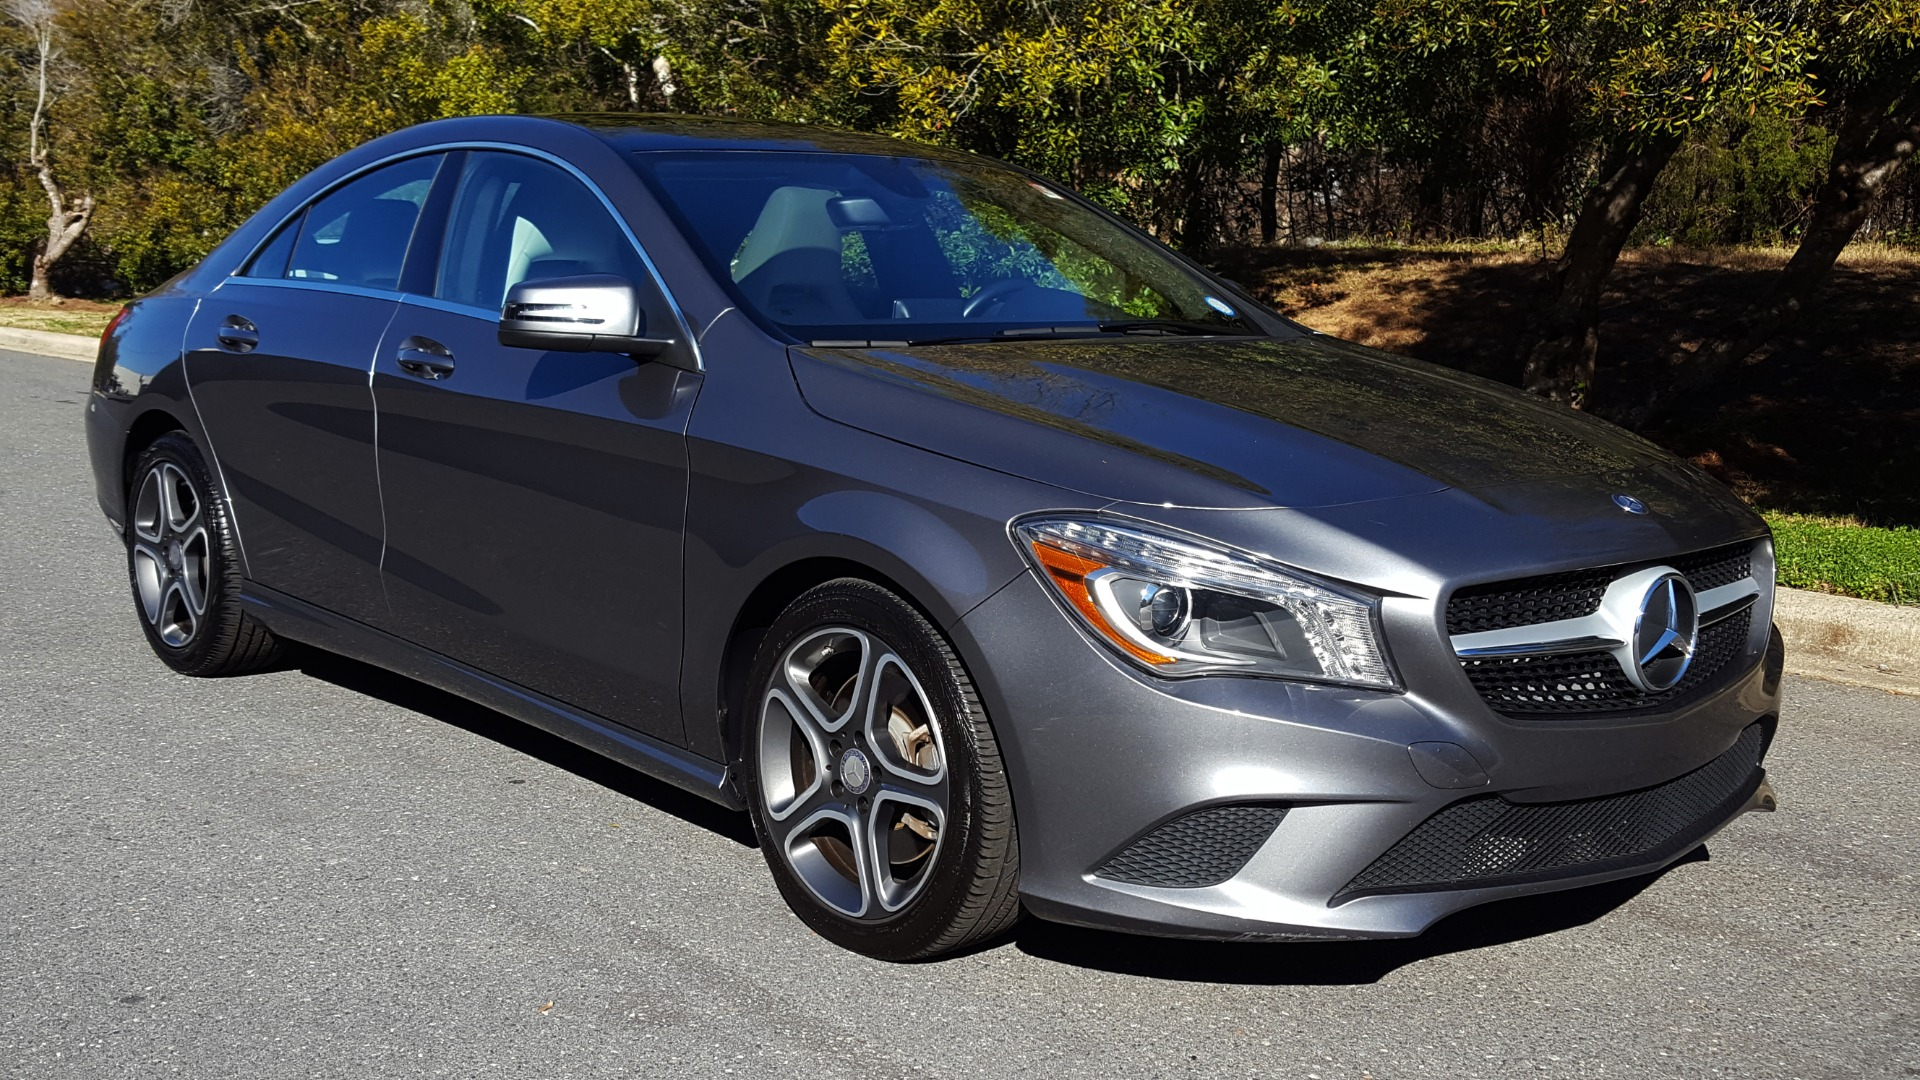 Used 2014 Mercedes-Benz CLA-CLASS CLA 250 / NAV / PANO-ROOF / BLIND SPOT ASSIST / XENON HEADLIGHTS for sale $19,995 at Formula Imports in Charlotte NC 28227 6